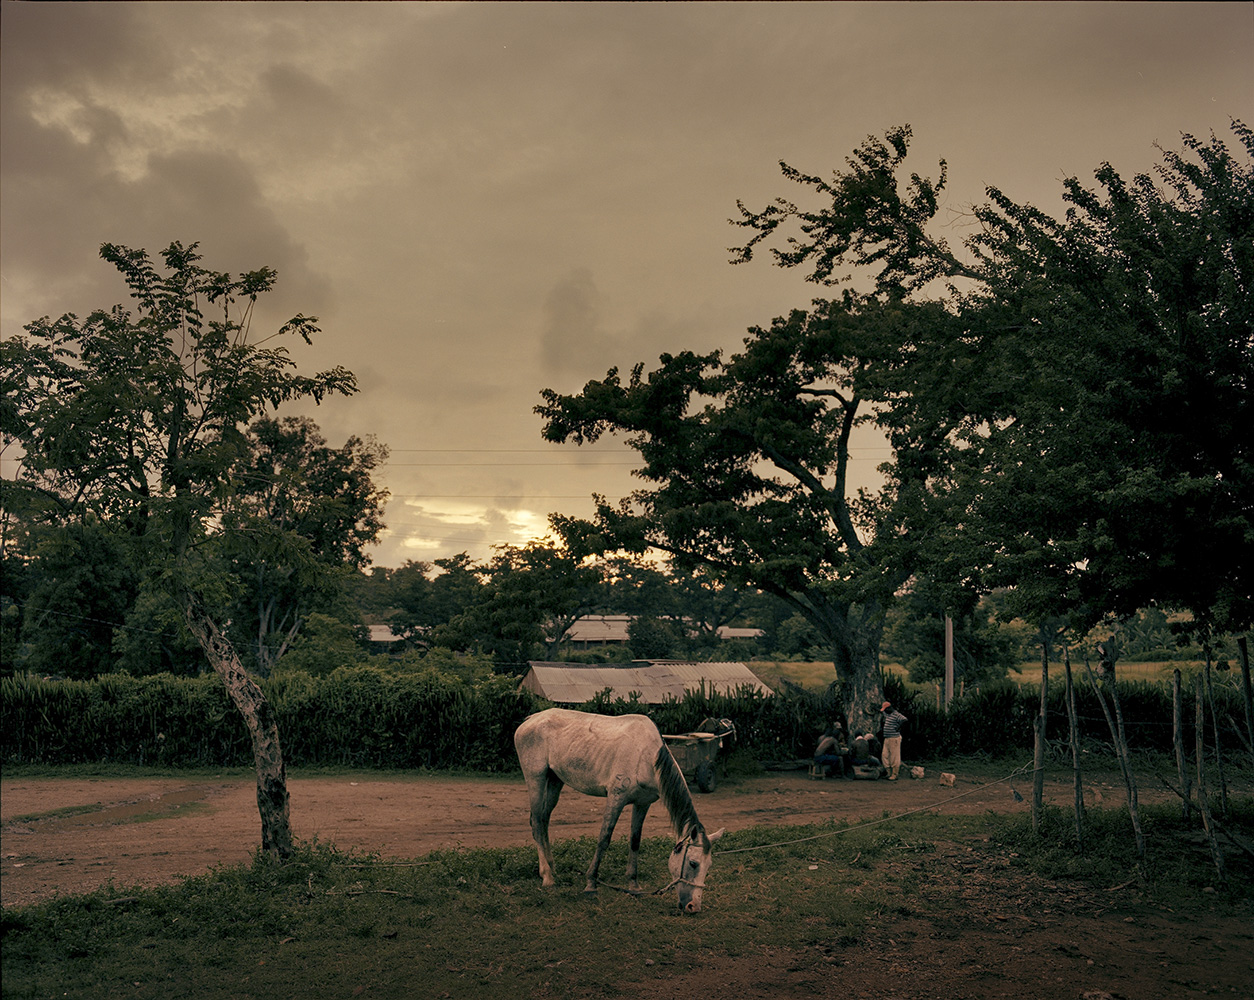 A horse grazing while owner plays dominoes in El Brujo town, outside Santiago de Cuba city.